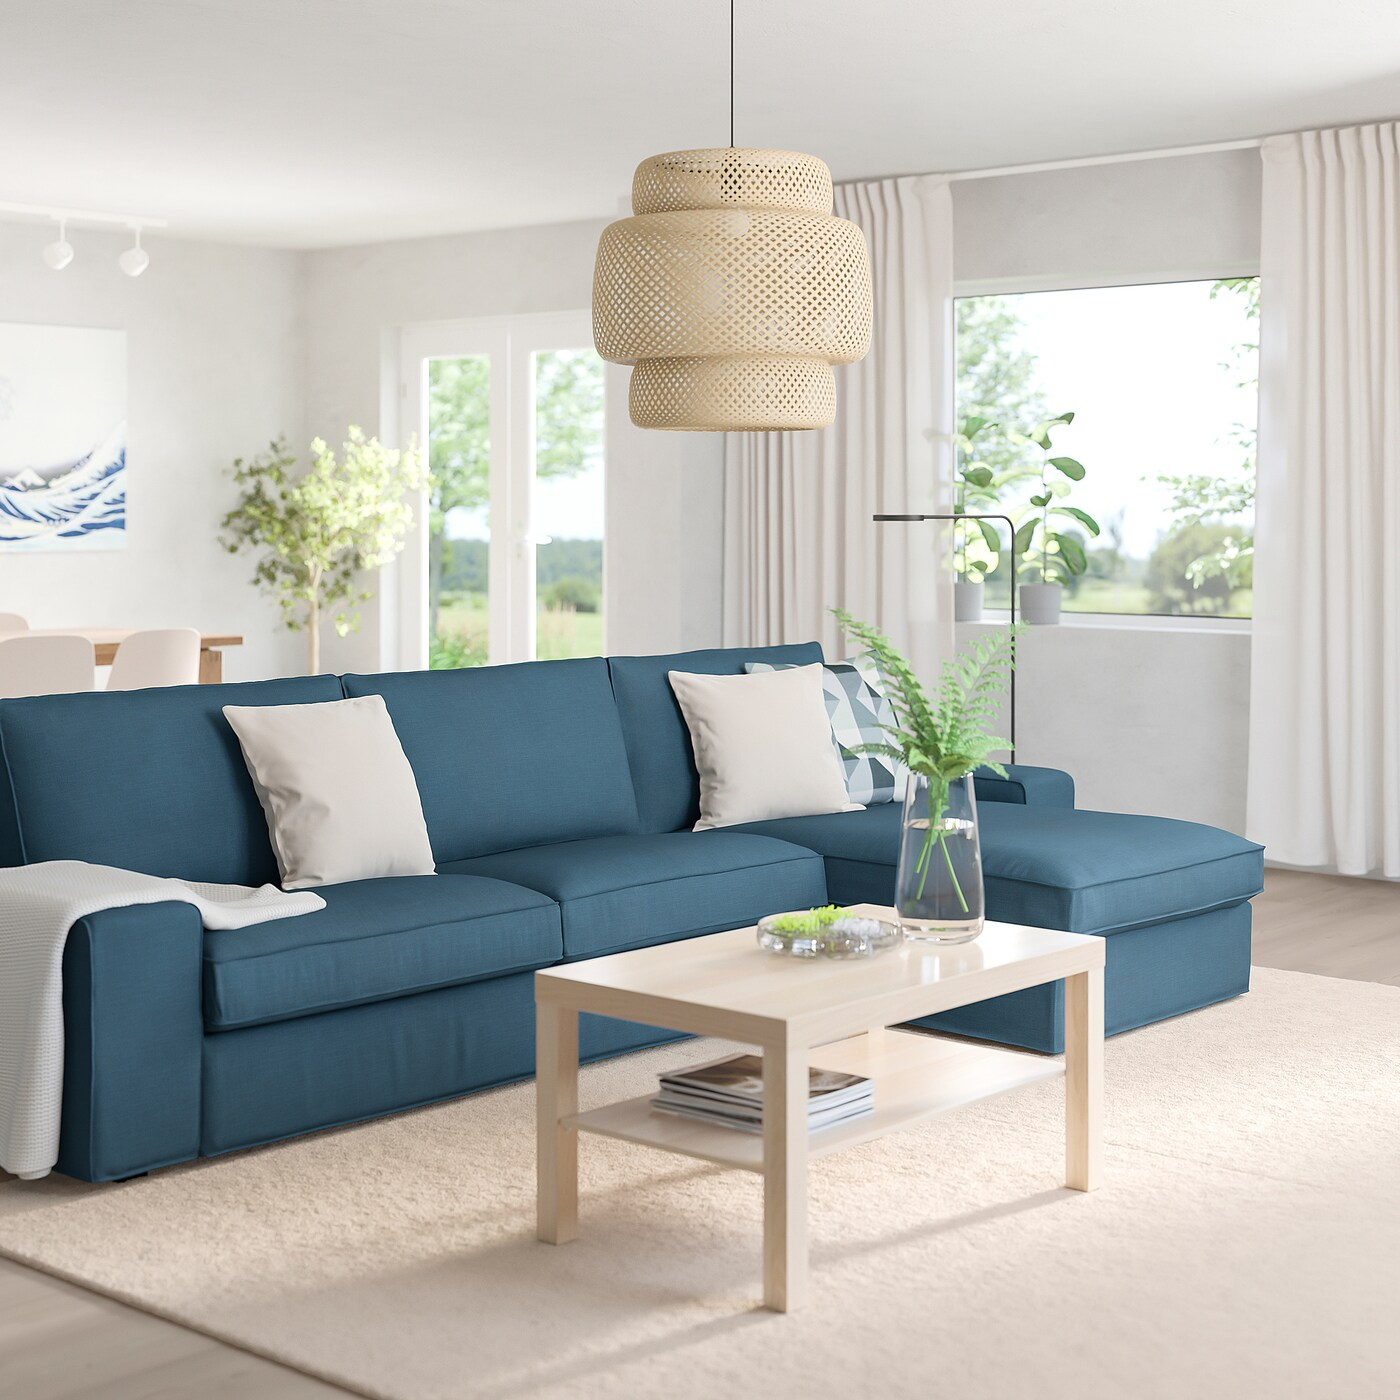 kivik sectional 4 seat with chaise hillared dark blue